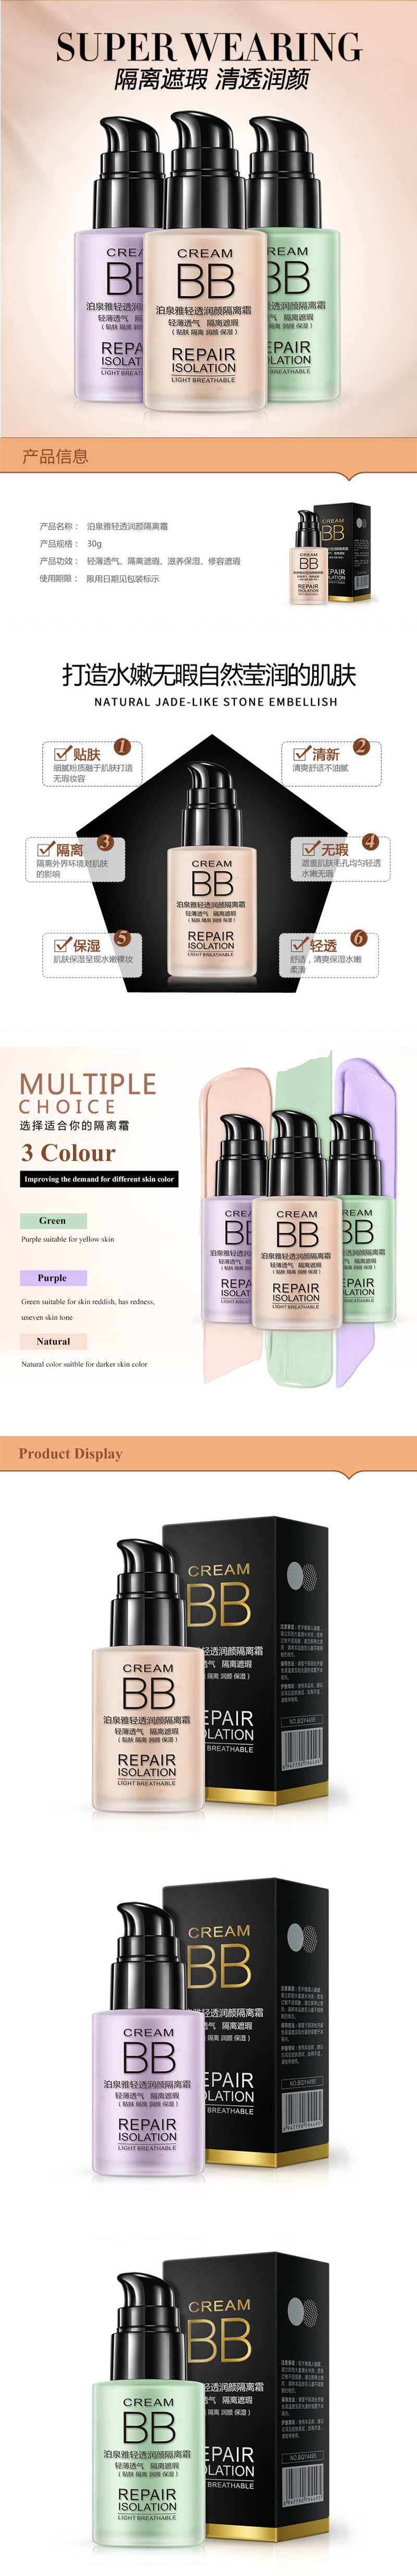 Buy Clearance Sale Large Stock Bioaqua Embellish Snow To Cushion Natural Colour 01 Box Orange Bb Cream Air Model G Blusher Blush Makeup Blushes Concealer Make Up Moisturizing Repair Capacity Bare Brighten